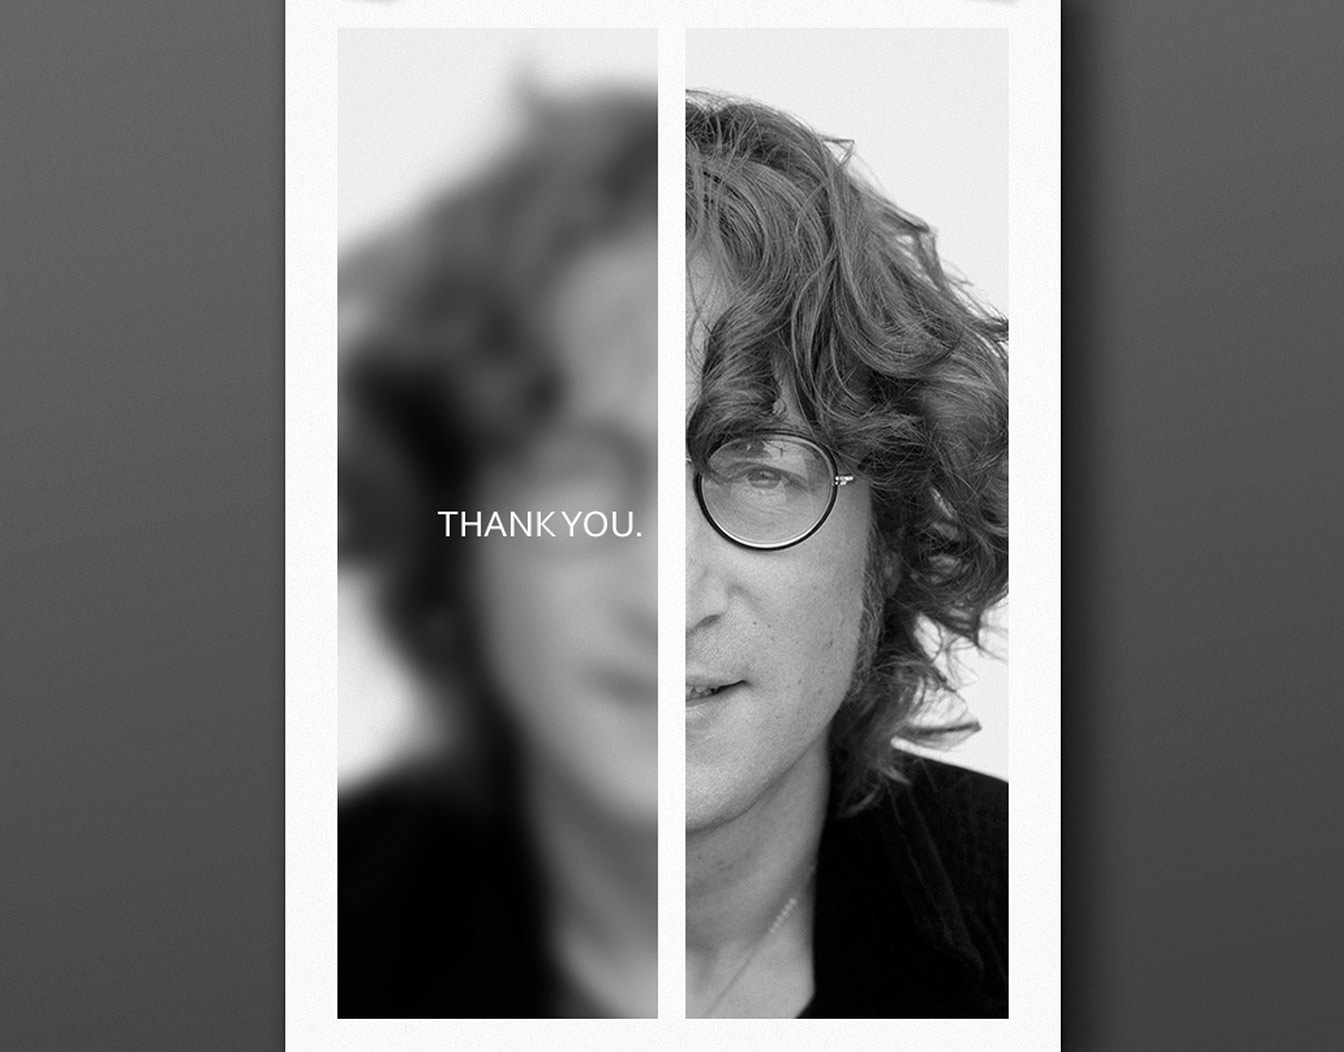 Thank you card with portrait on front